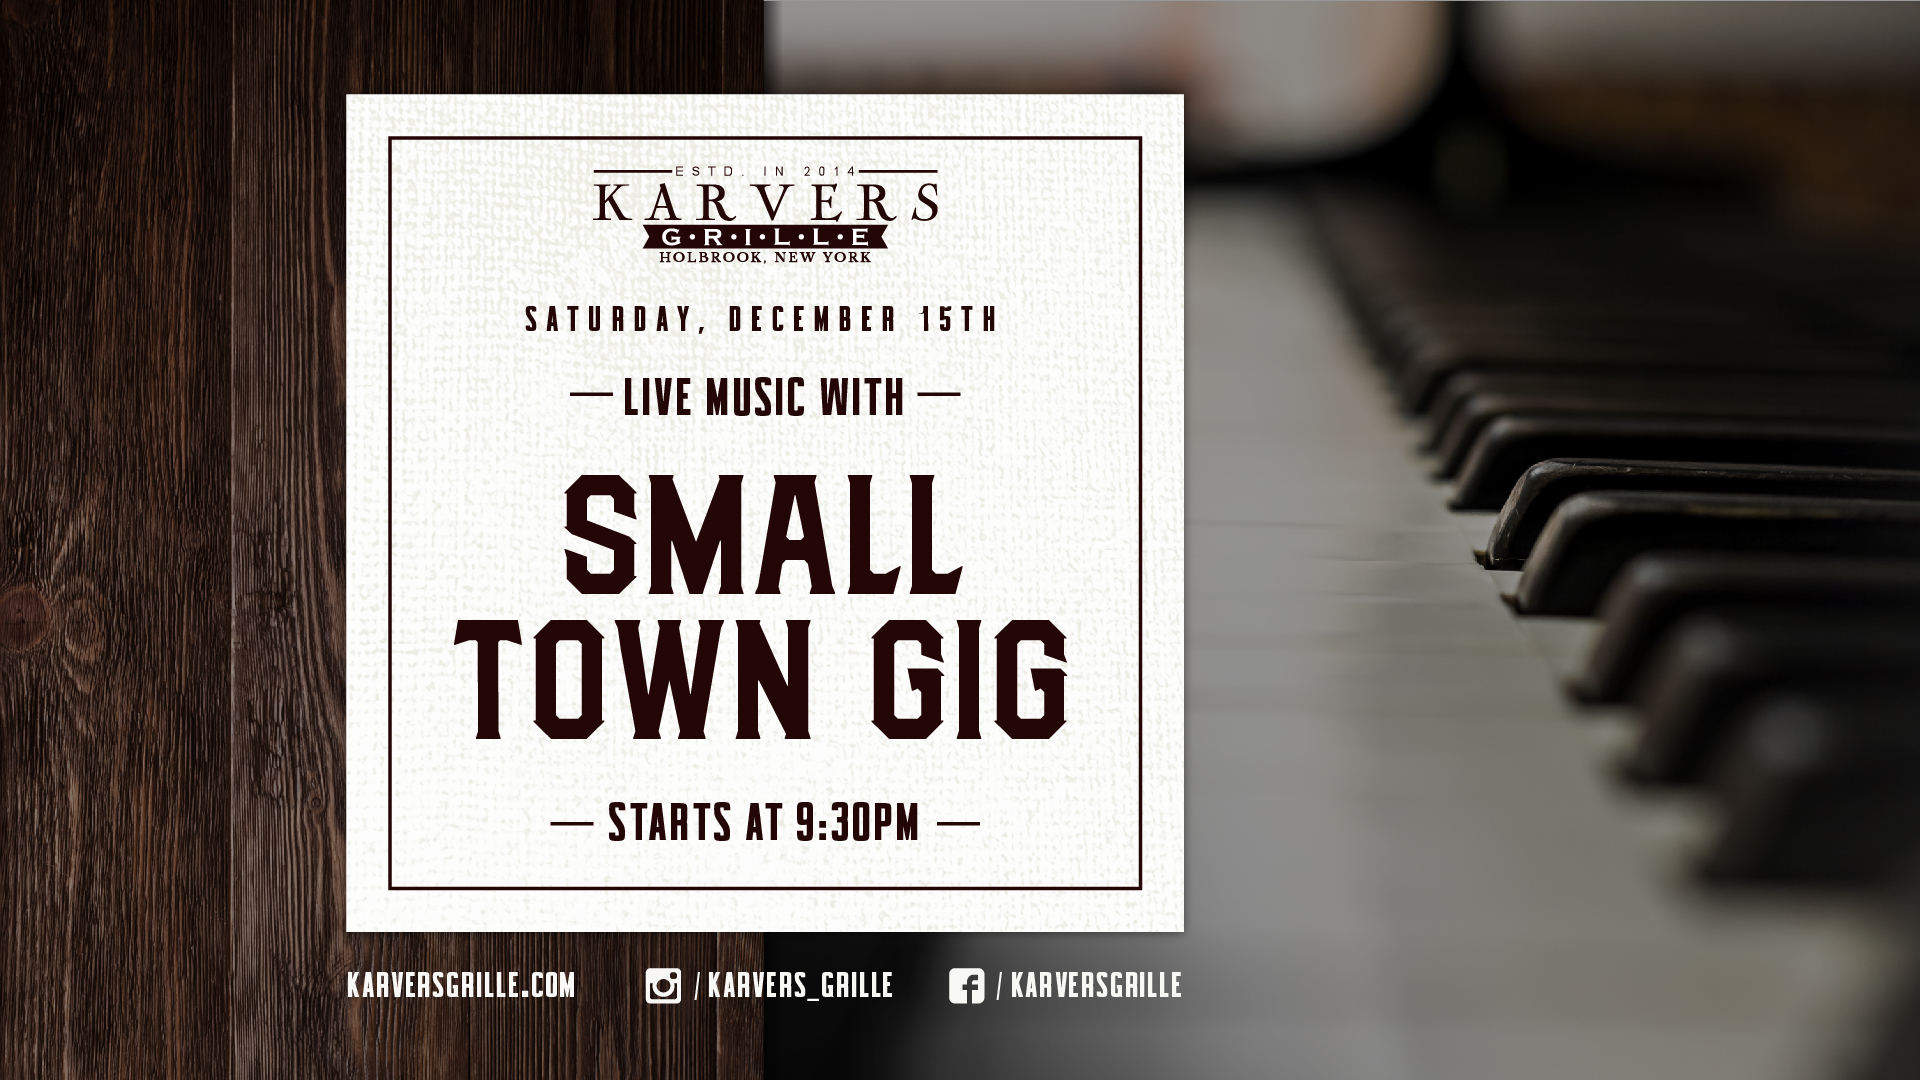 Small Town Gig